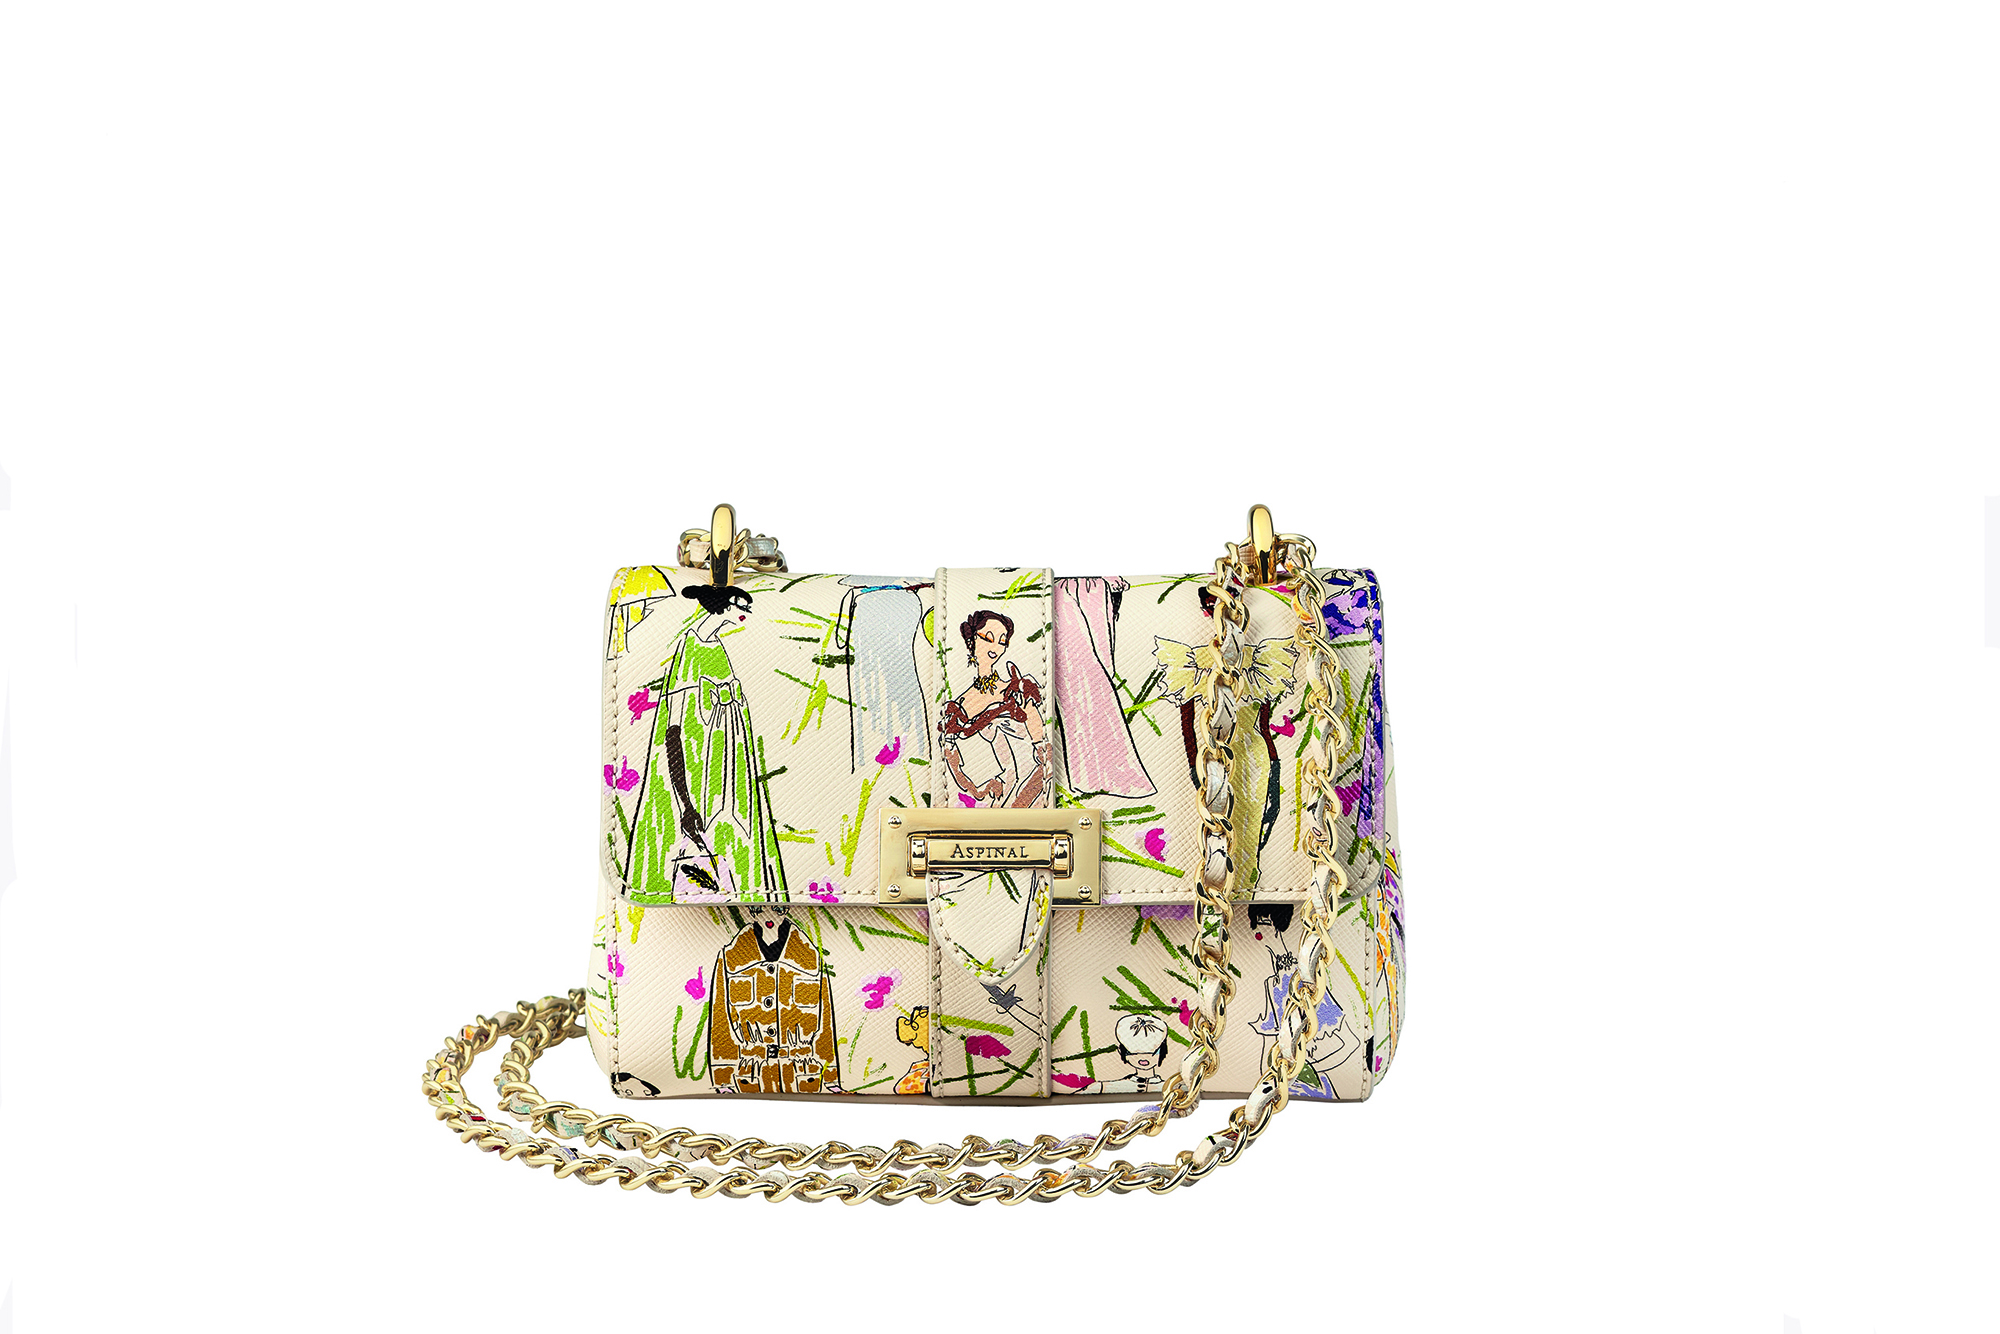 Giles x Aspinal Micro Lottie Bag in Girls Print